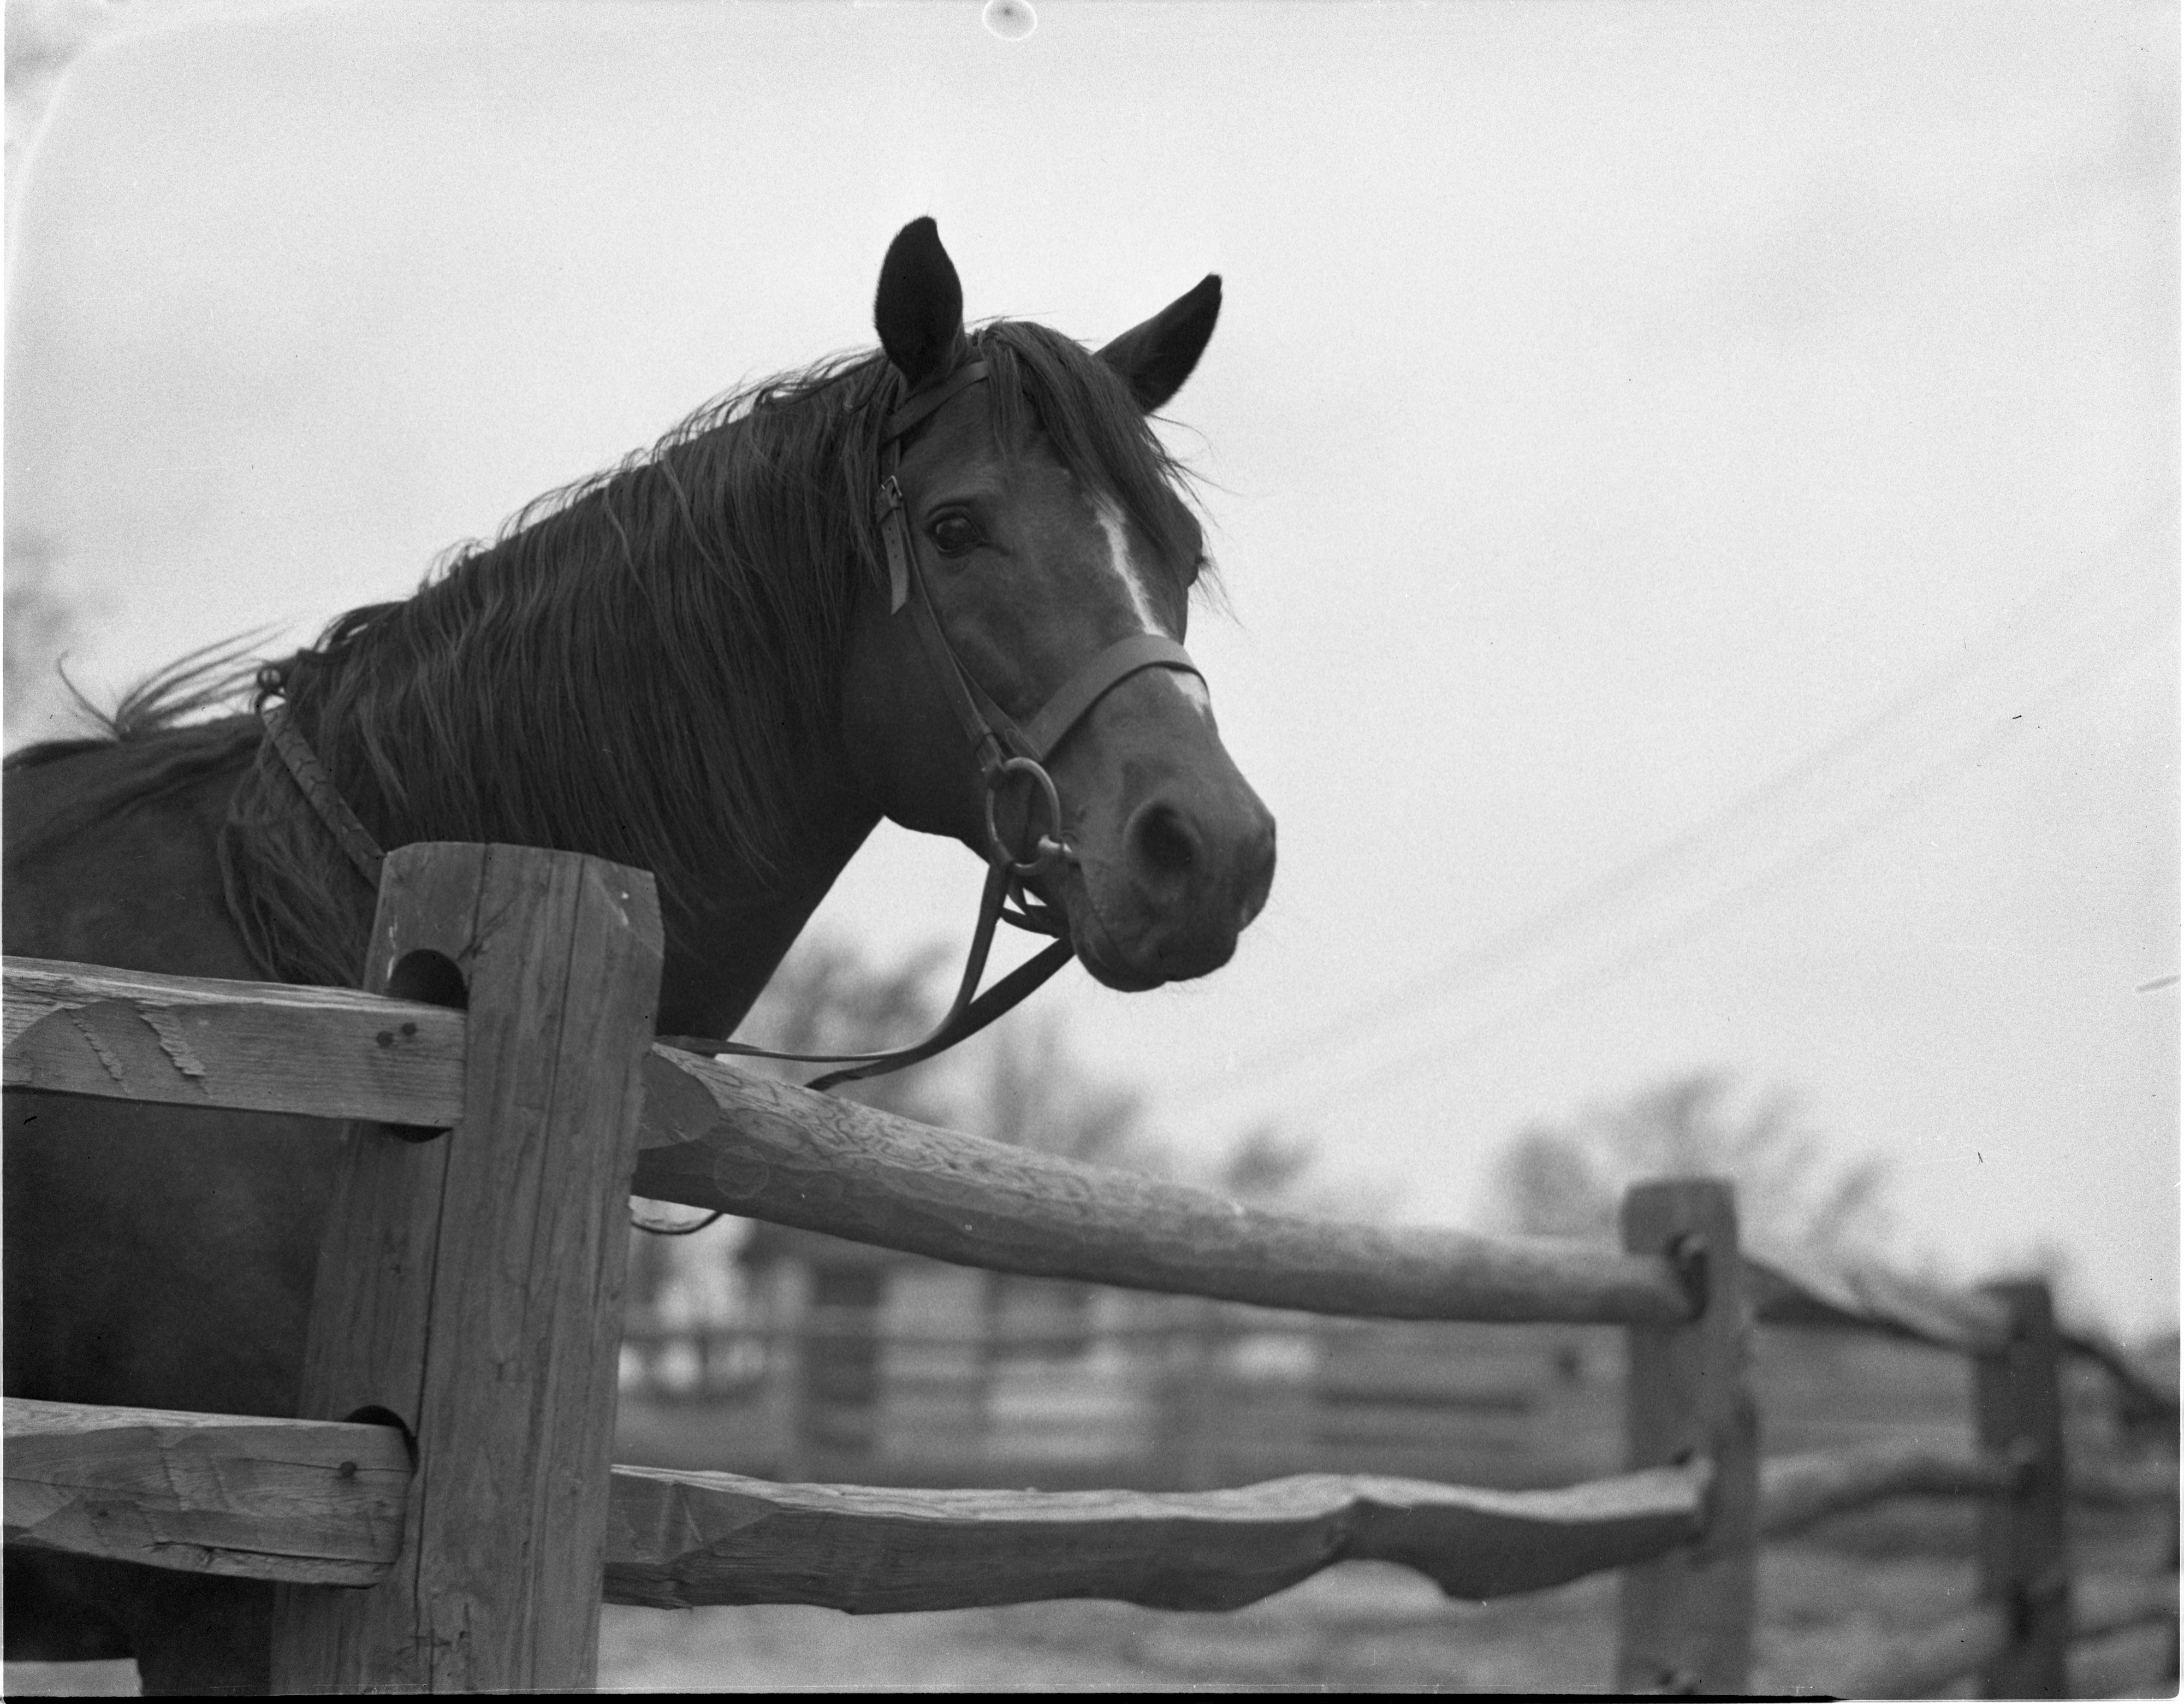 Doc Jock, U. S. Army Remount Stallion, At C. J. Wageman Farm - May 1943 image